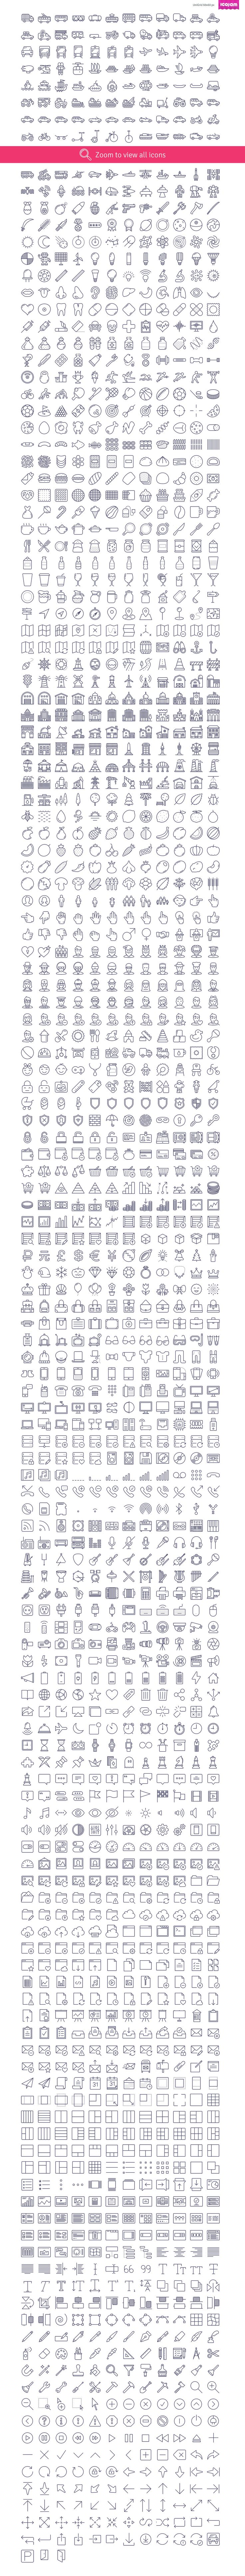 Unigrid contains 1791 outline vector icons divided into following categories: Baby, Basic, Biology, Buildings, Clothing & Accessories, Design, Devices, Finance, Food, Fruits & vegetables,